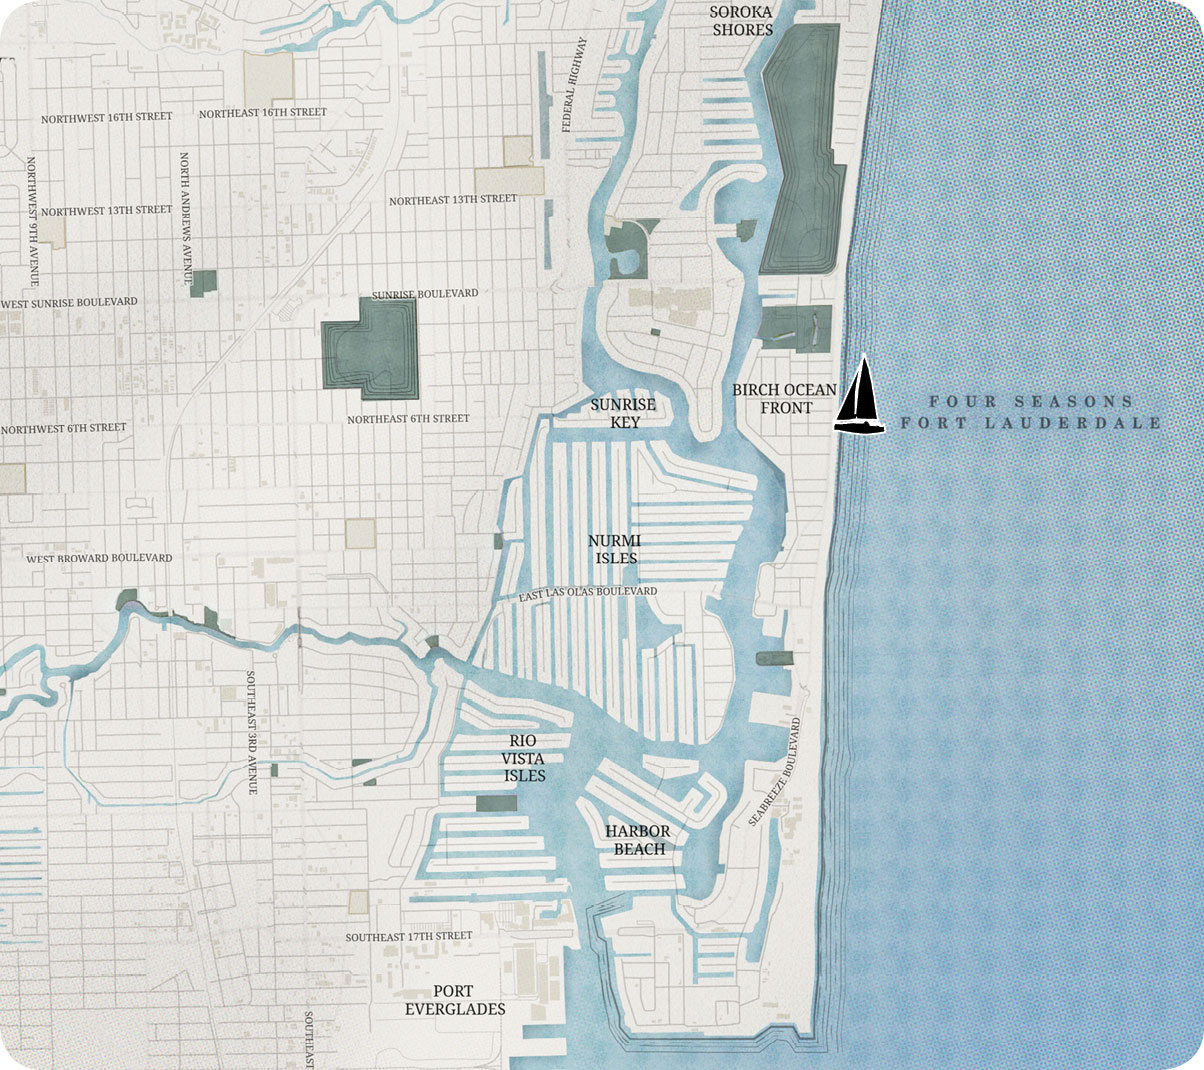 Four Seasons Fort Lauderdale Oceanfront Map